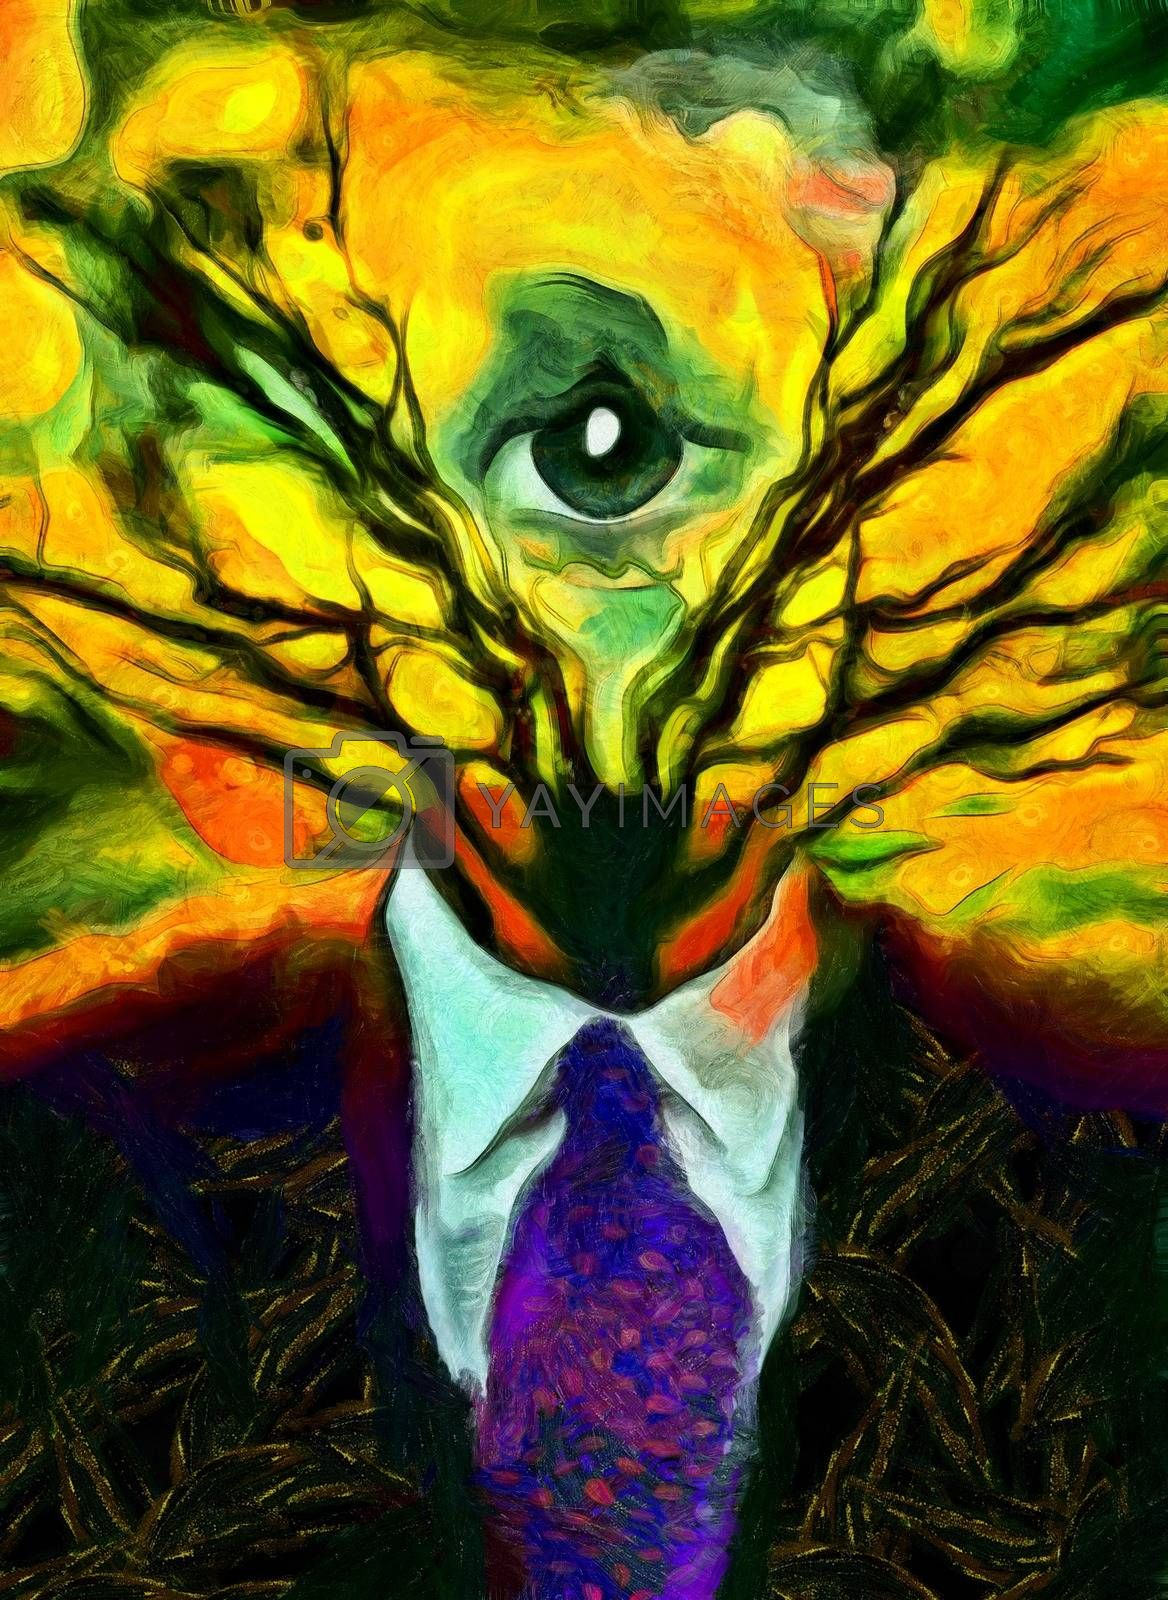 Surreal painting. Man's figure in a suit with tree branches and all-seeing eye instead of head.